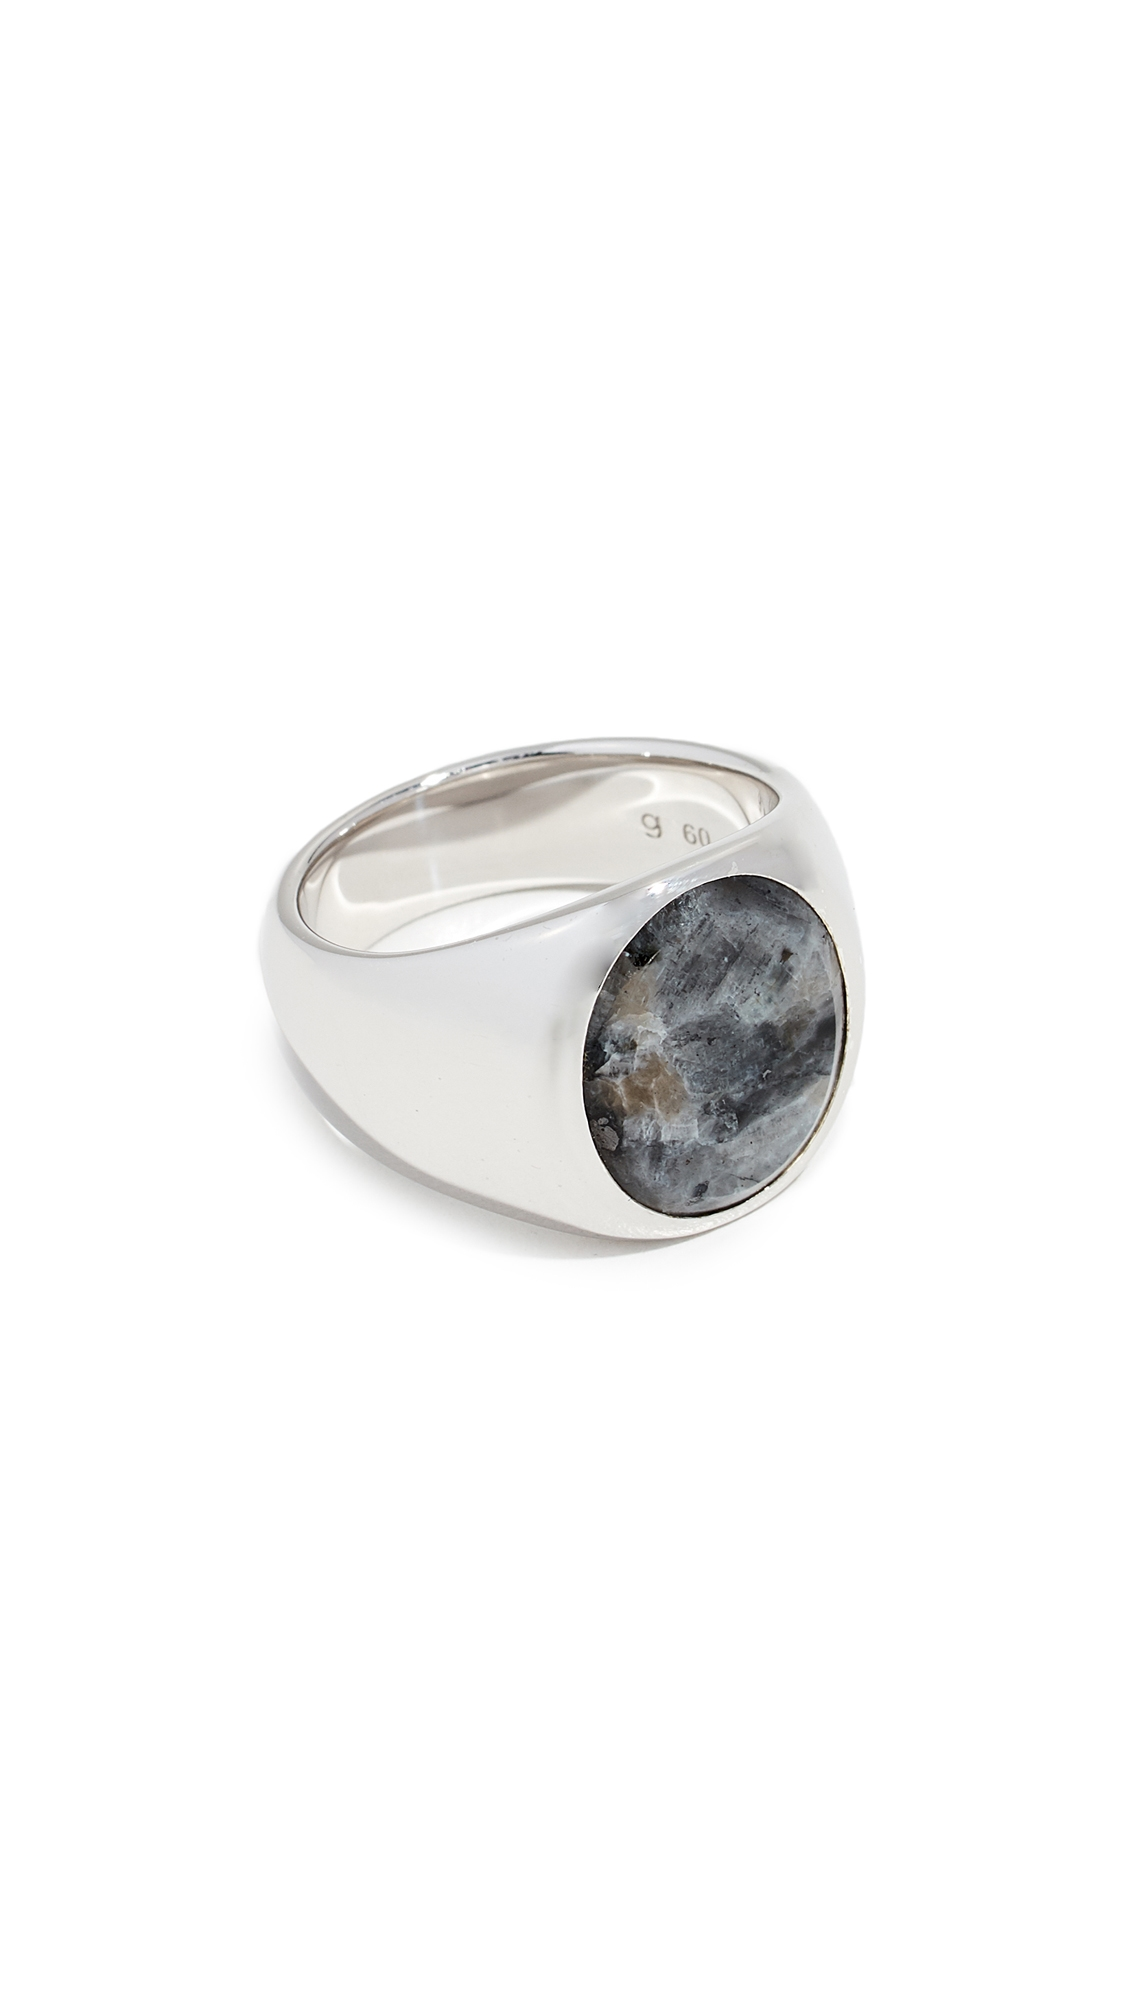 Oval Larvikite Ring in Sterling Silver from EAST DANE